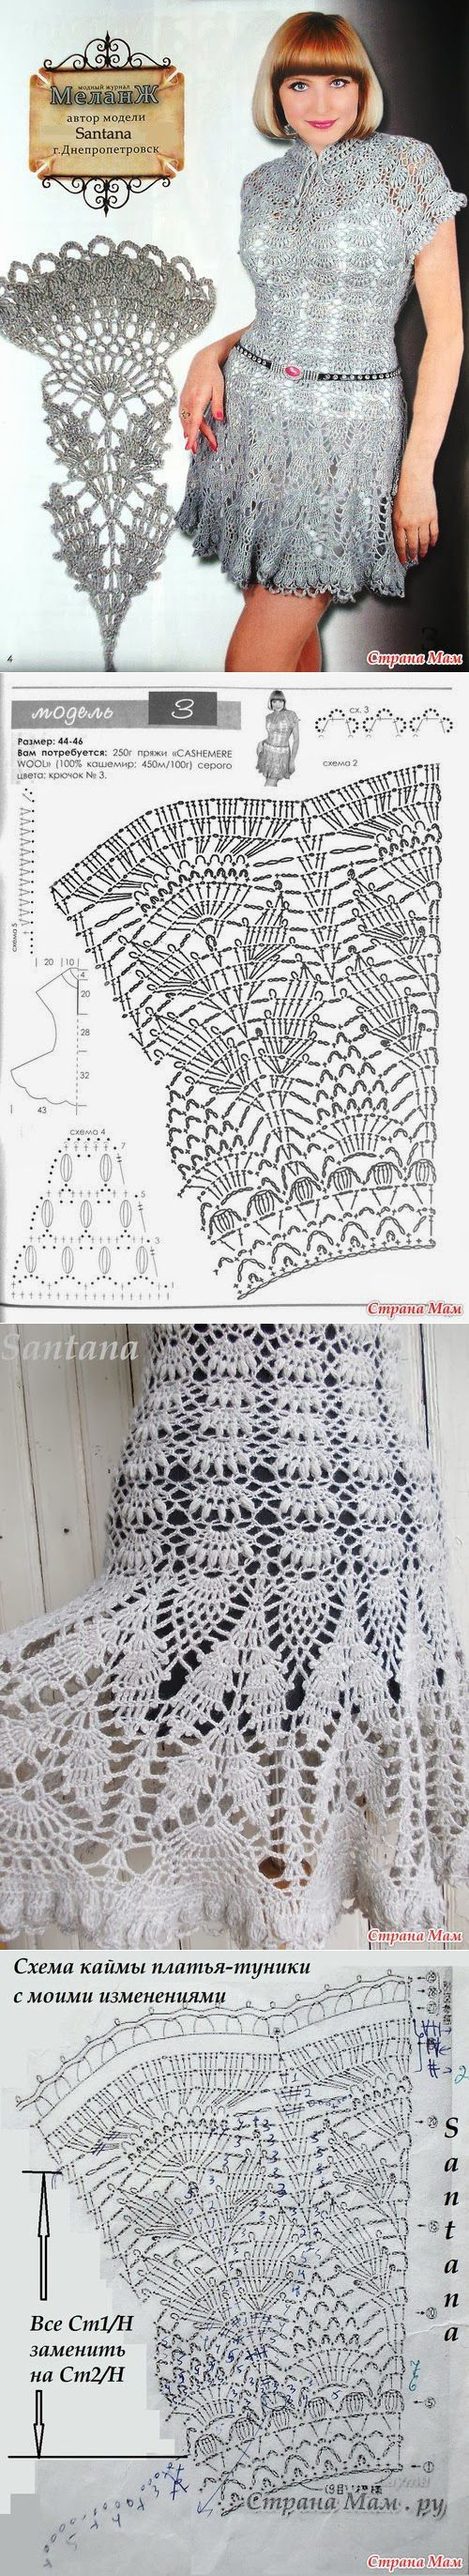 crochet crochet clothes and crochet skirts crochet diagram ccuart Images